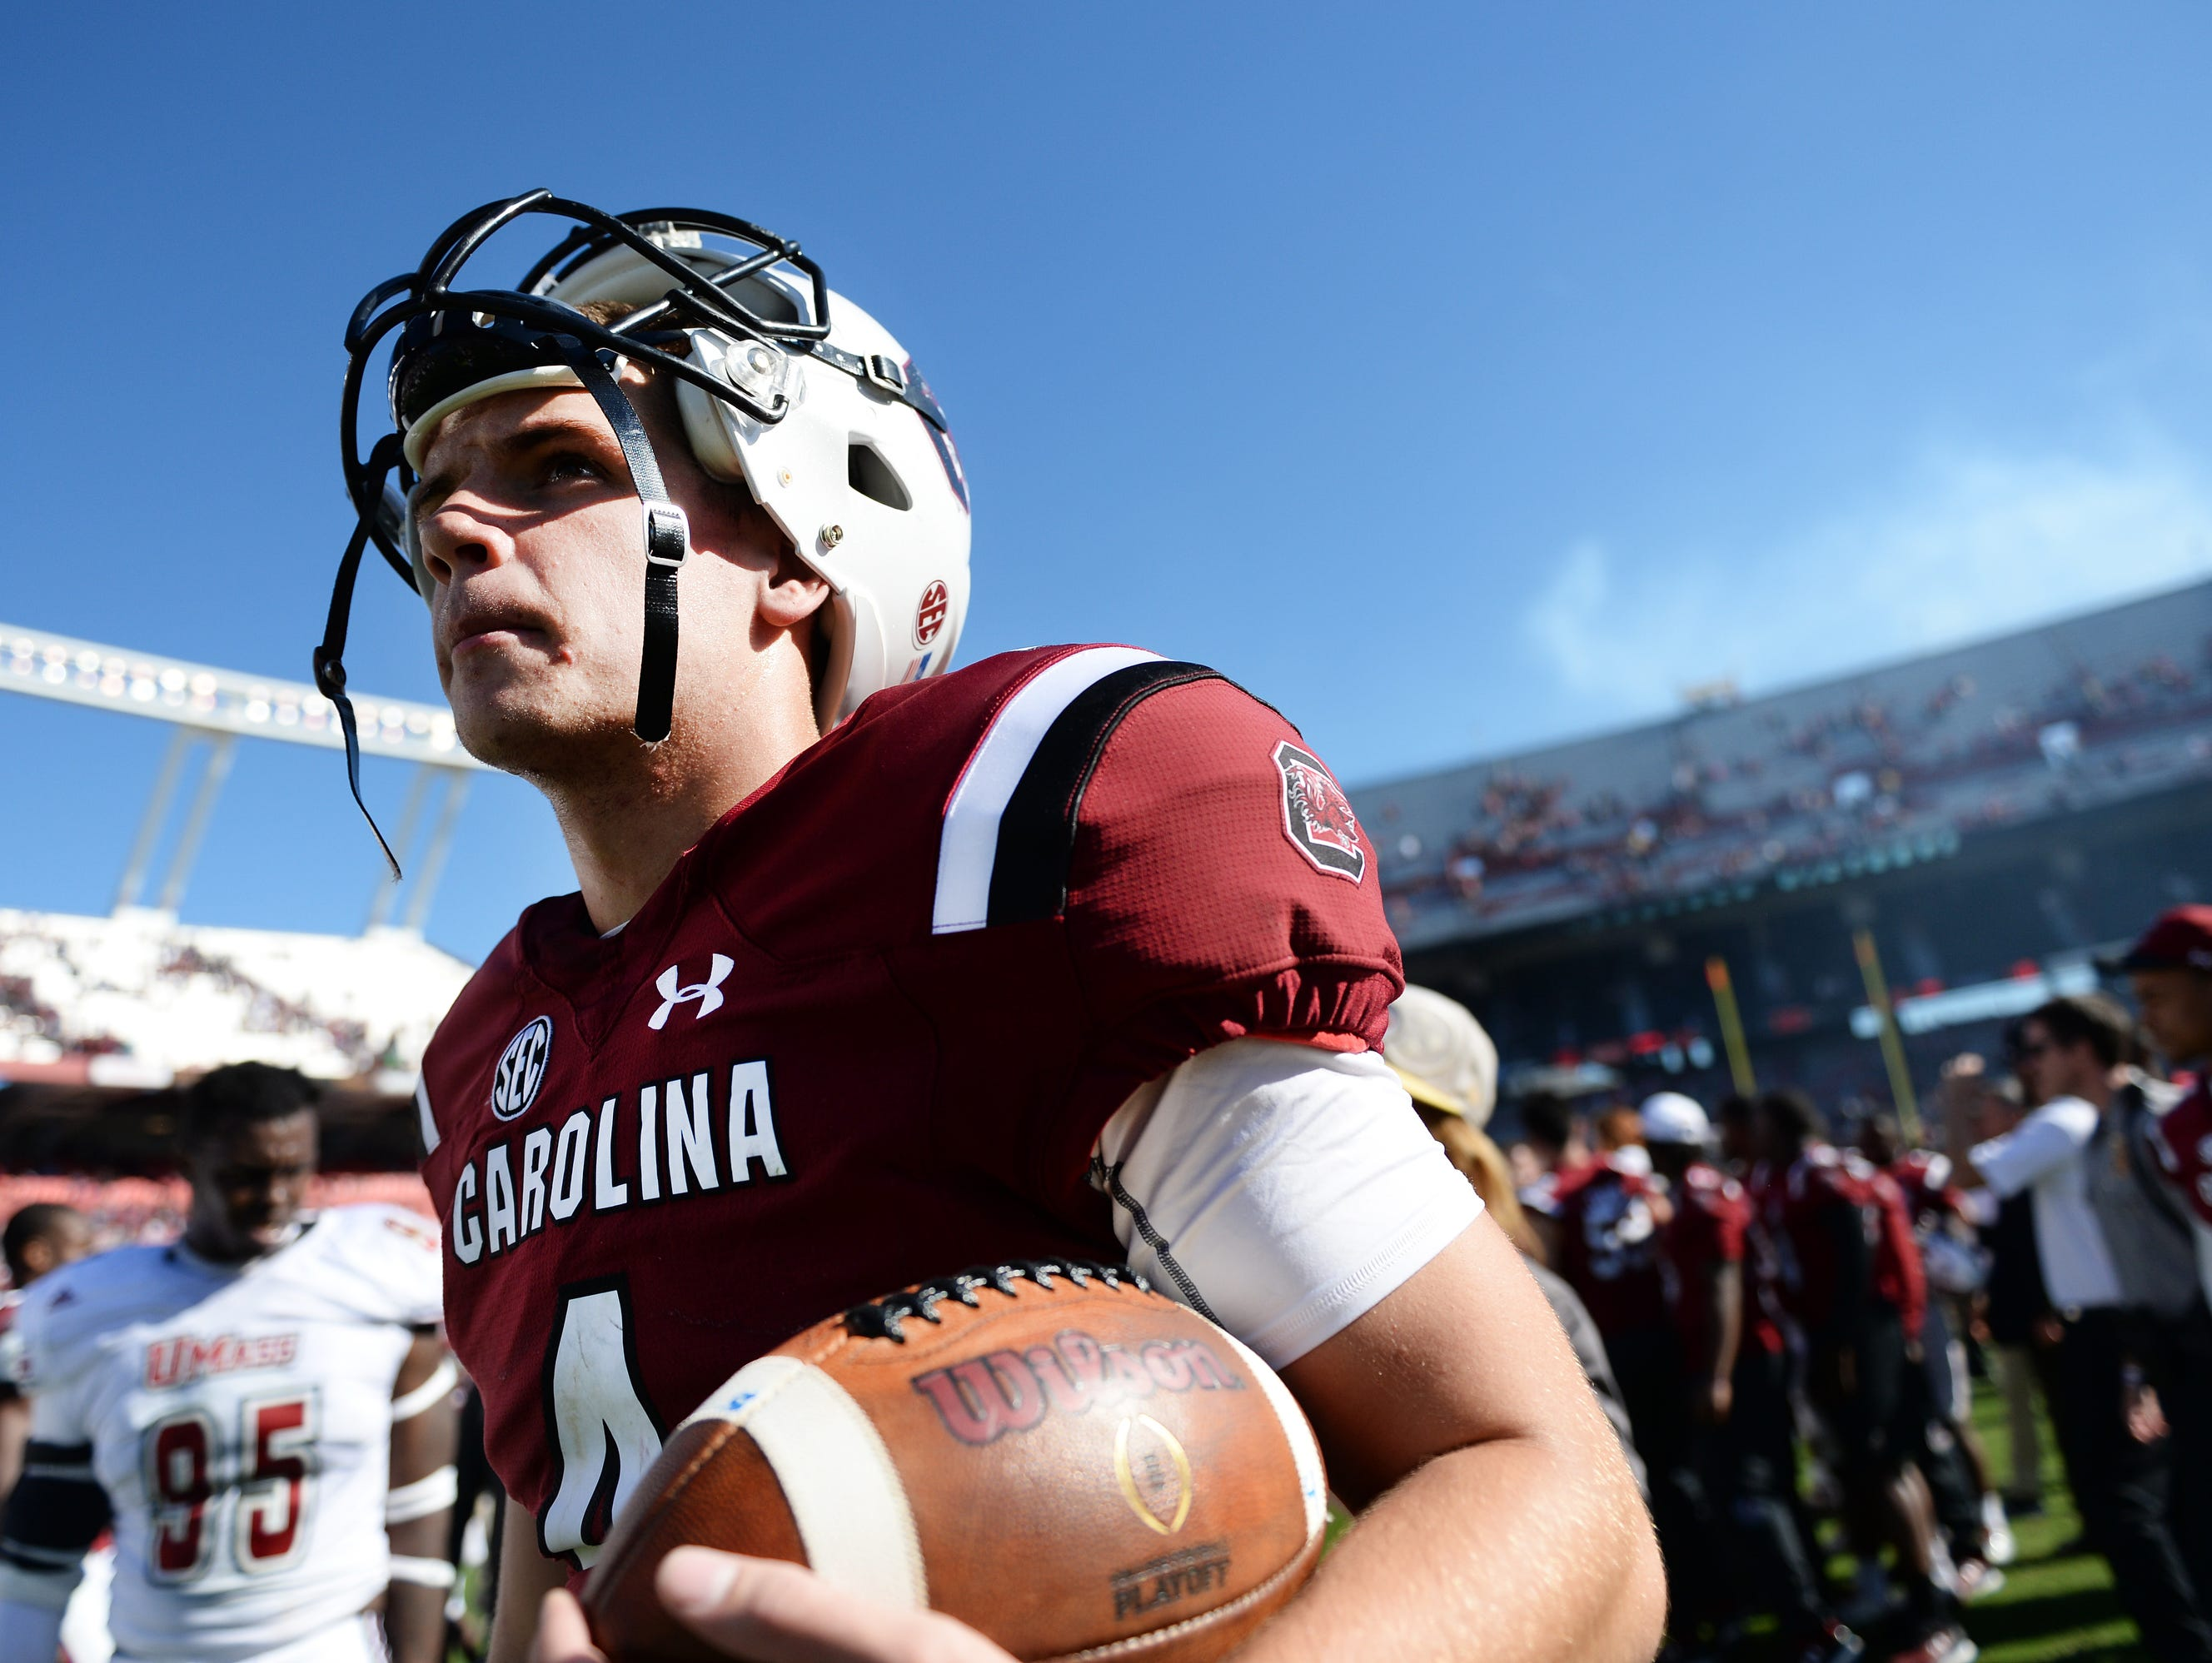 University of South Carolina quarterback Jake Bentley, shown following a game at Williams-Brice Stadium last season, is being looked to for leadership this year.